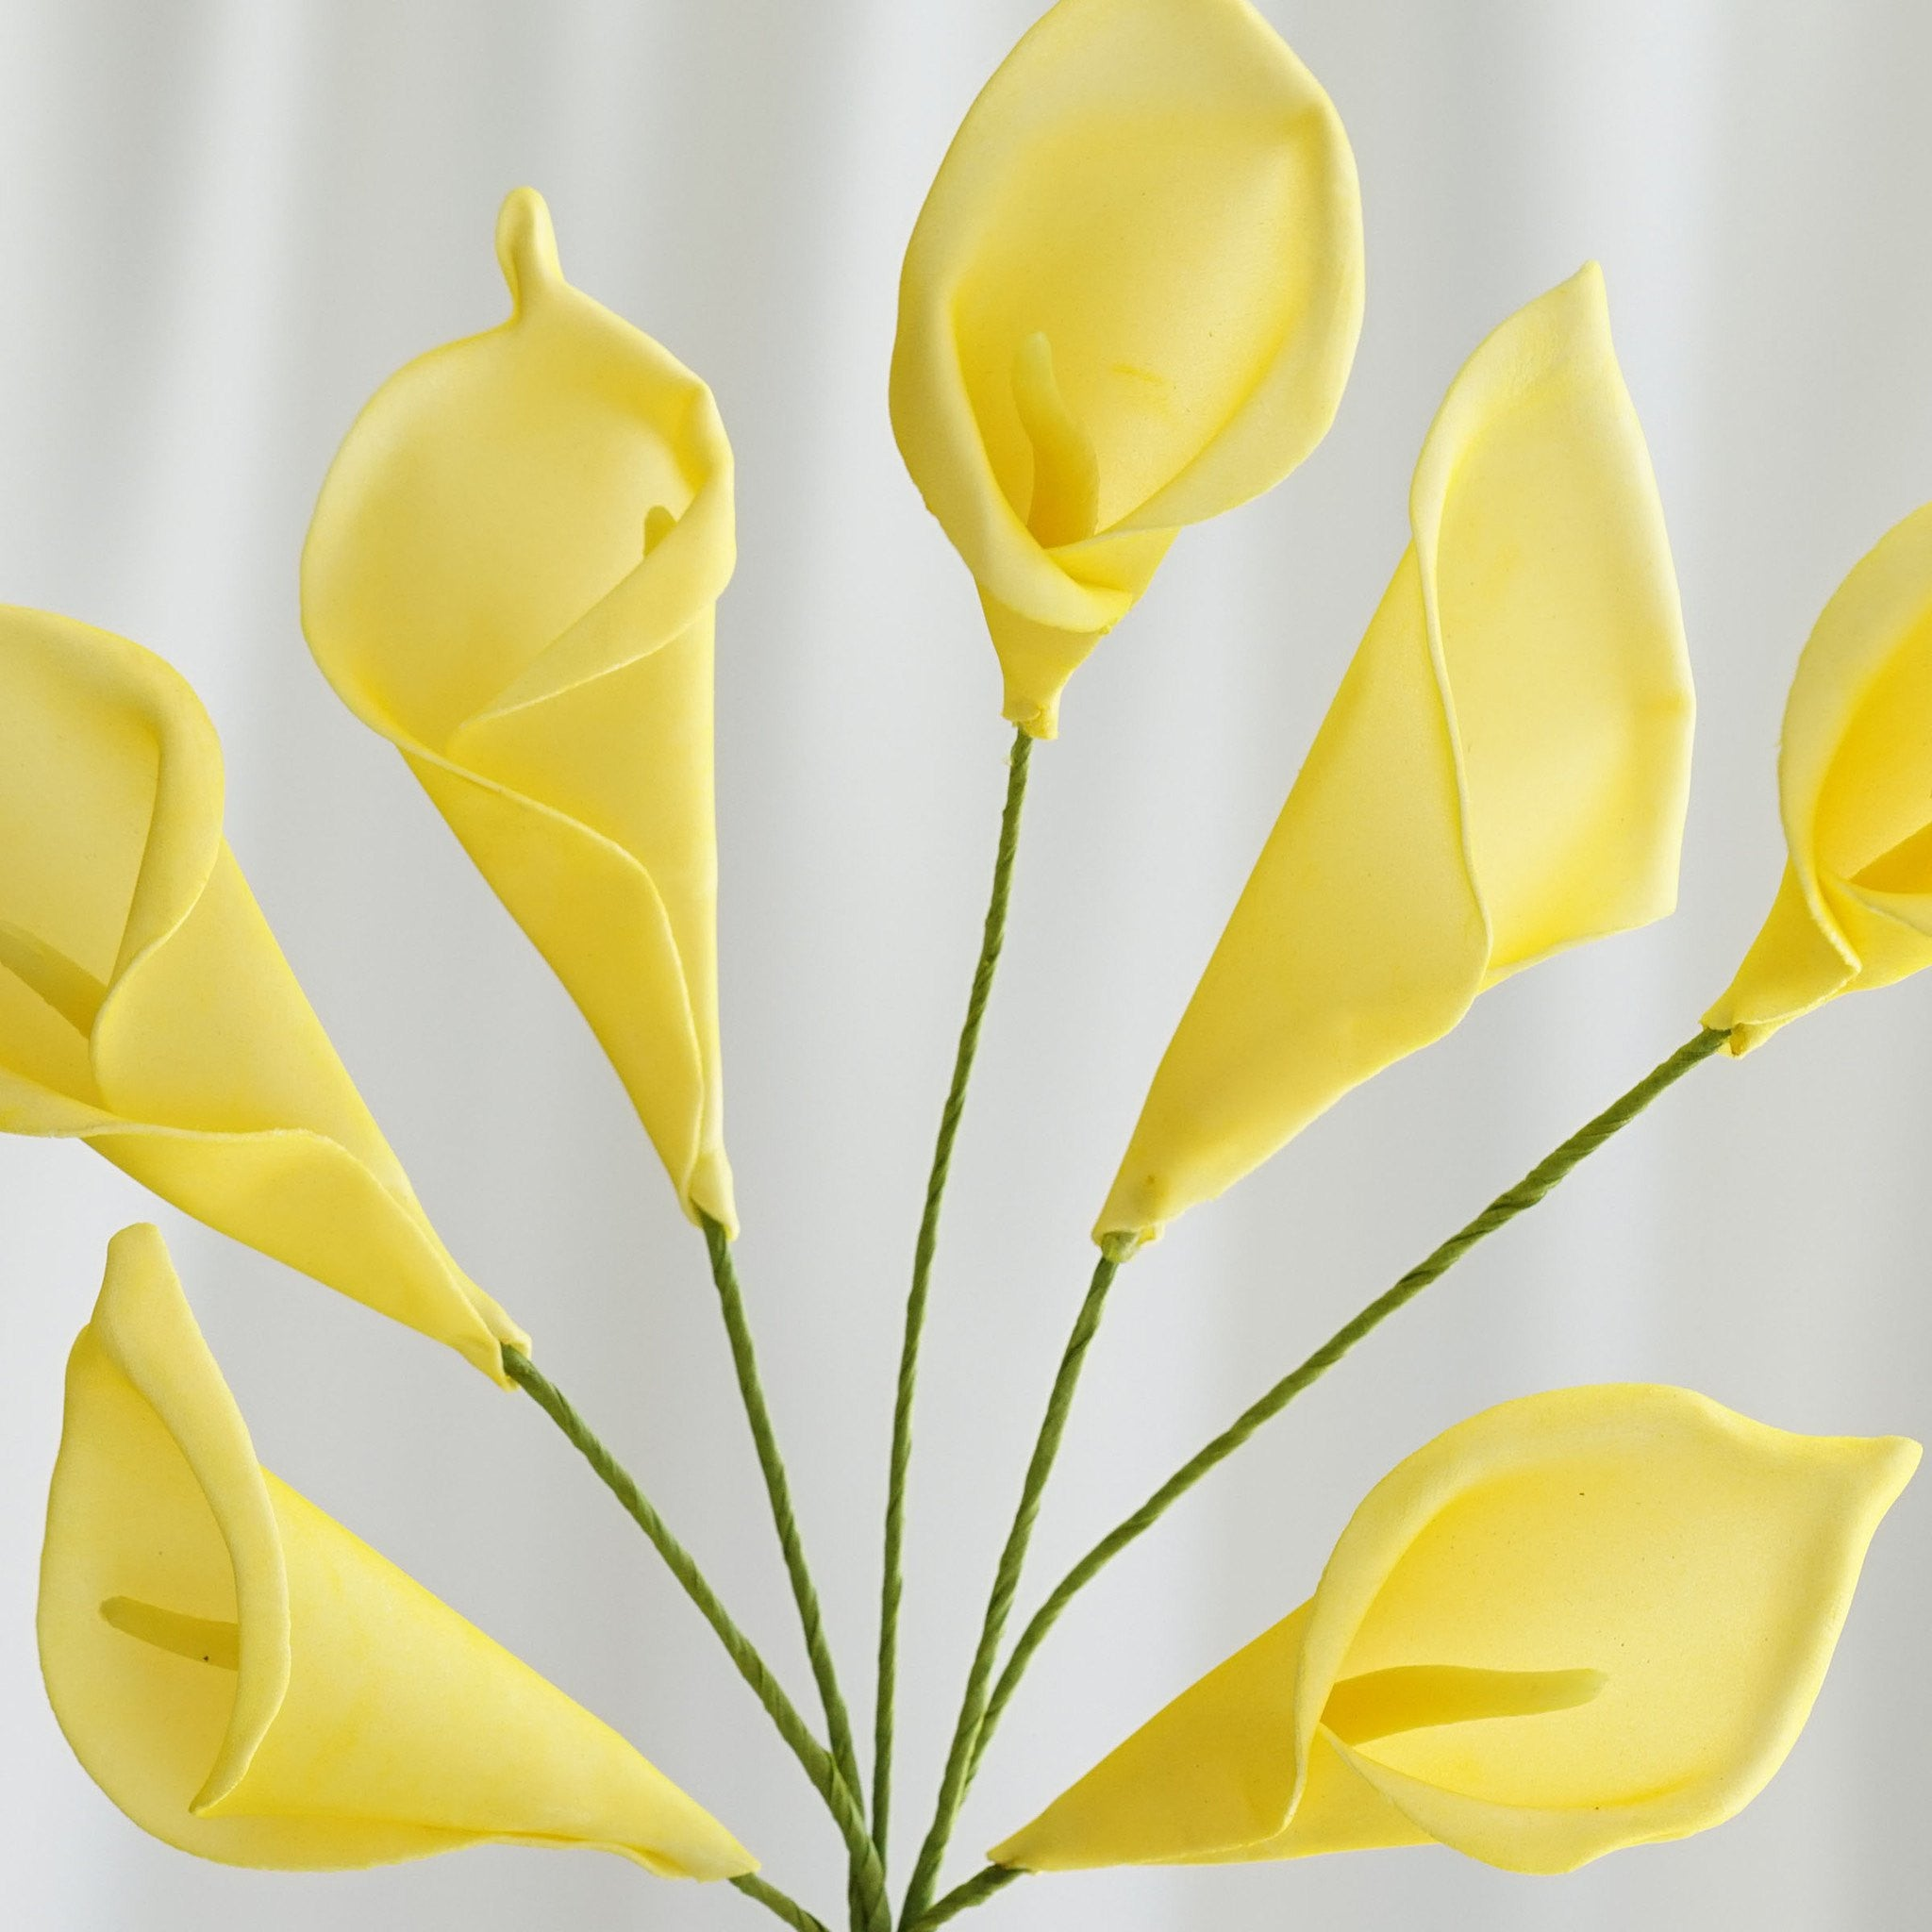 6 Bush 42 Pcs Yellow Artificial Calla Lilies Flowers Wedding Vase ...